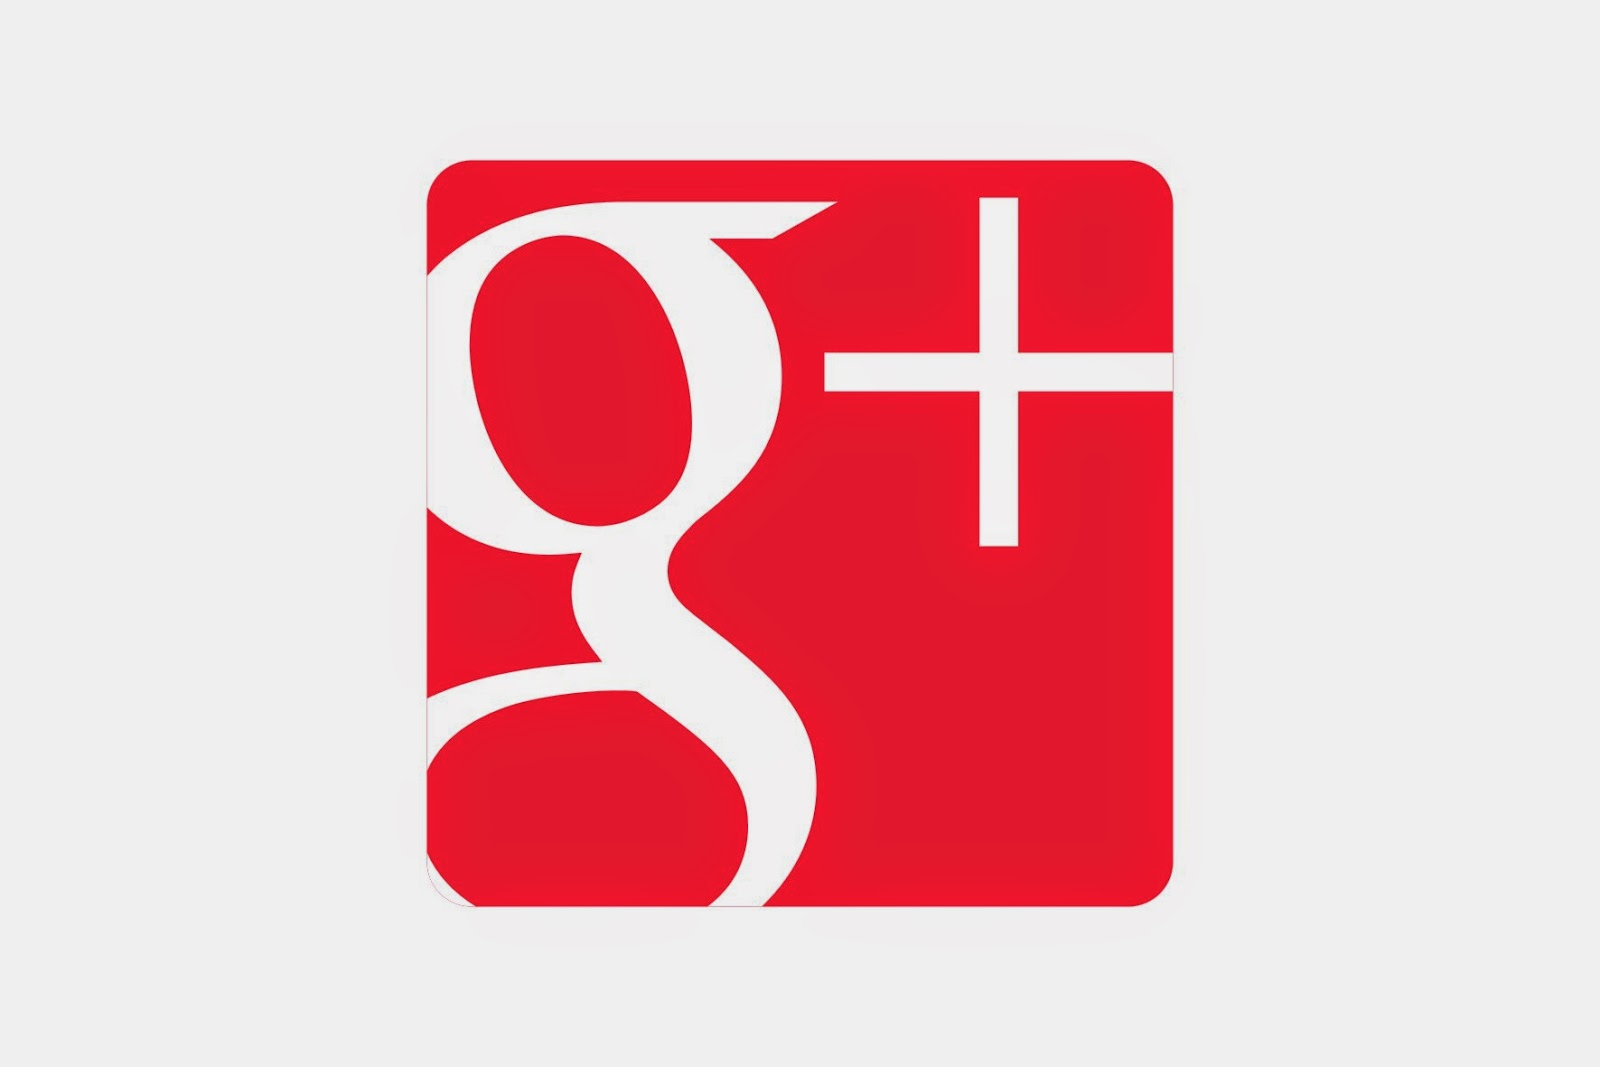 New google plus 2015 logo vector (. Eps +. Pdf, 1. 26 mb) download.